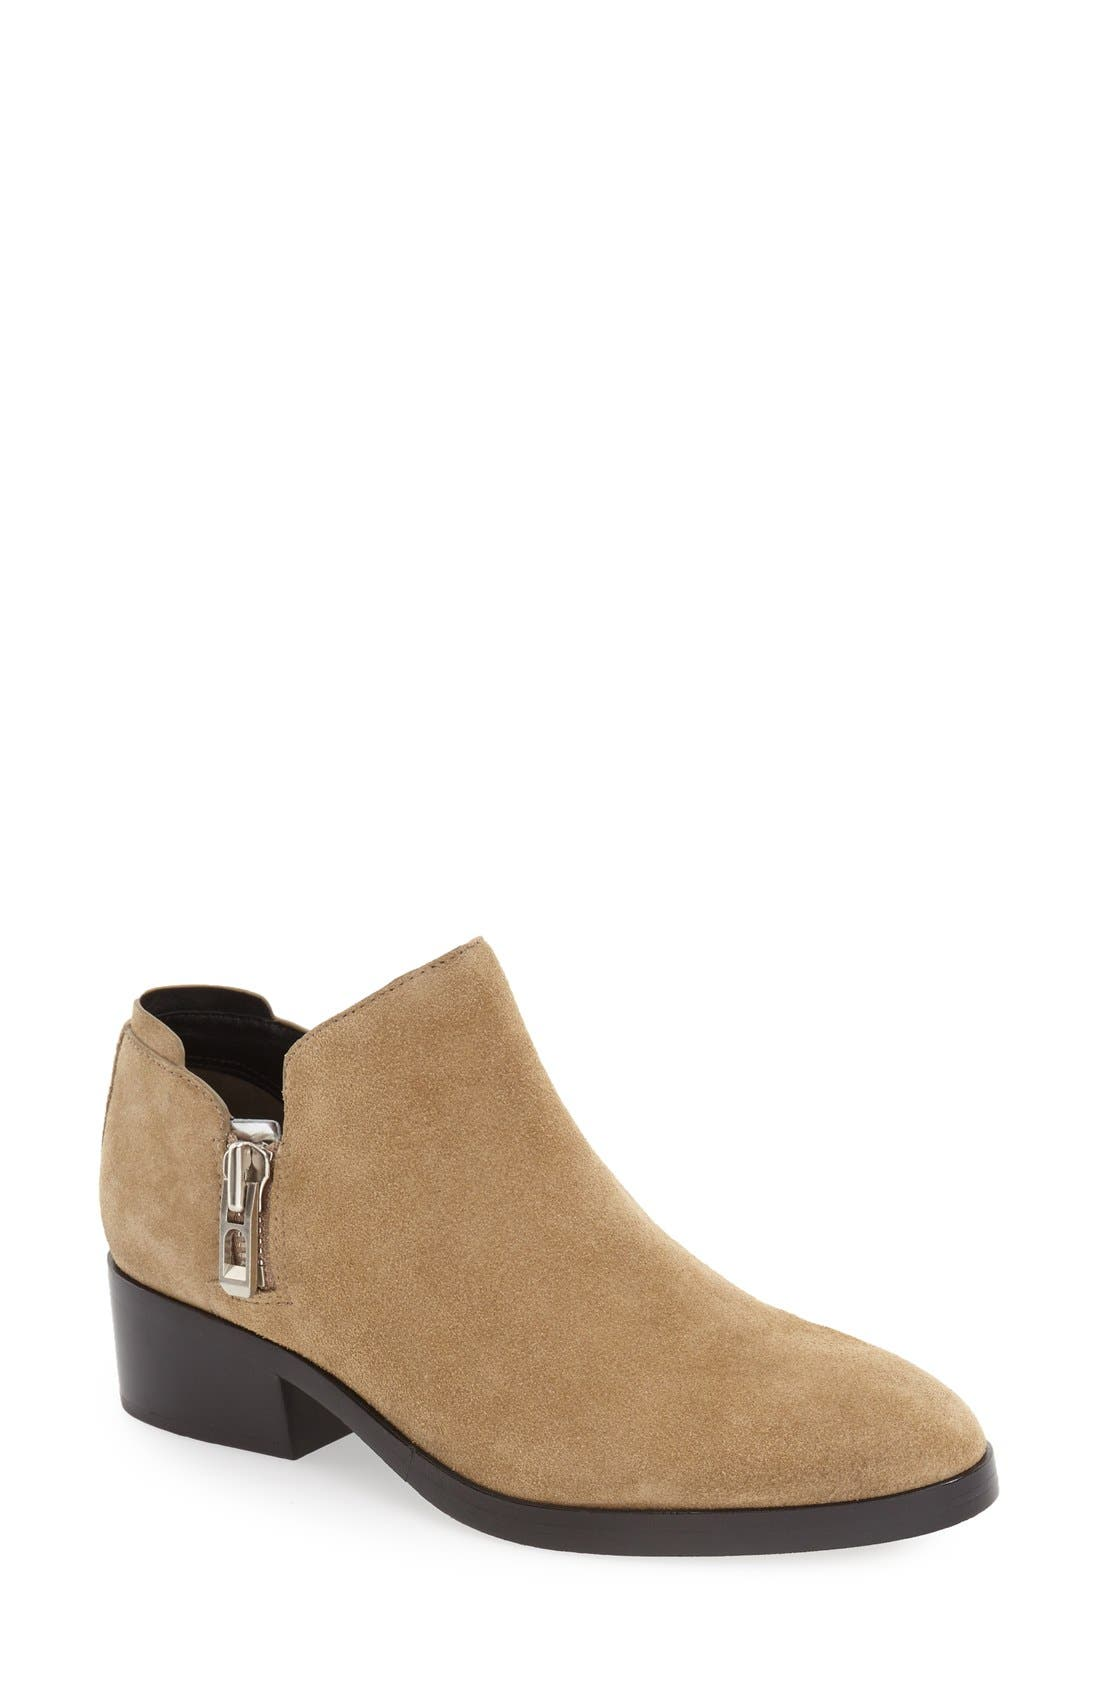 3.1 Phillip Lim 'Alexa' Zip Ankle Bootie (Women)